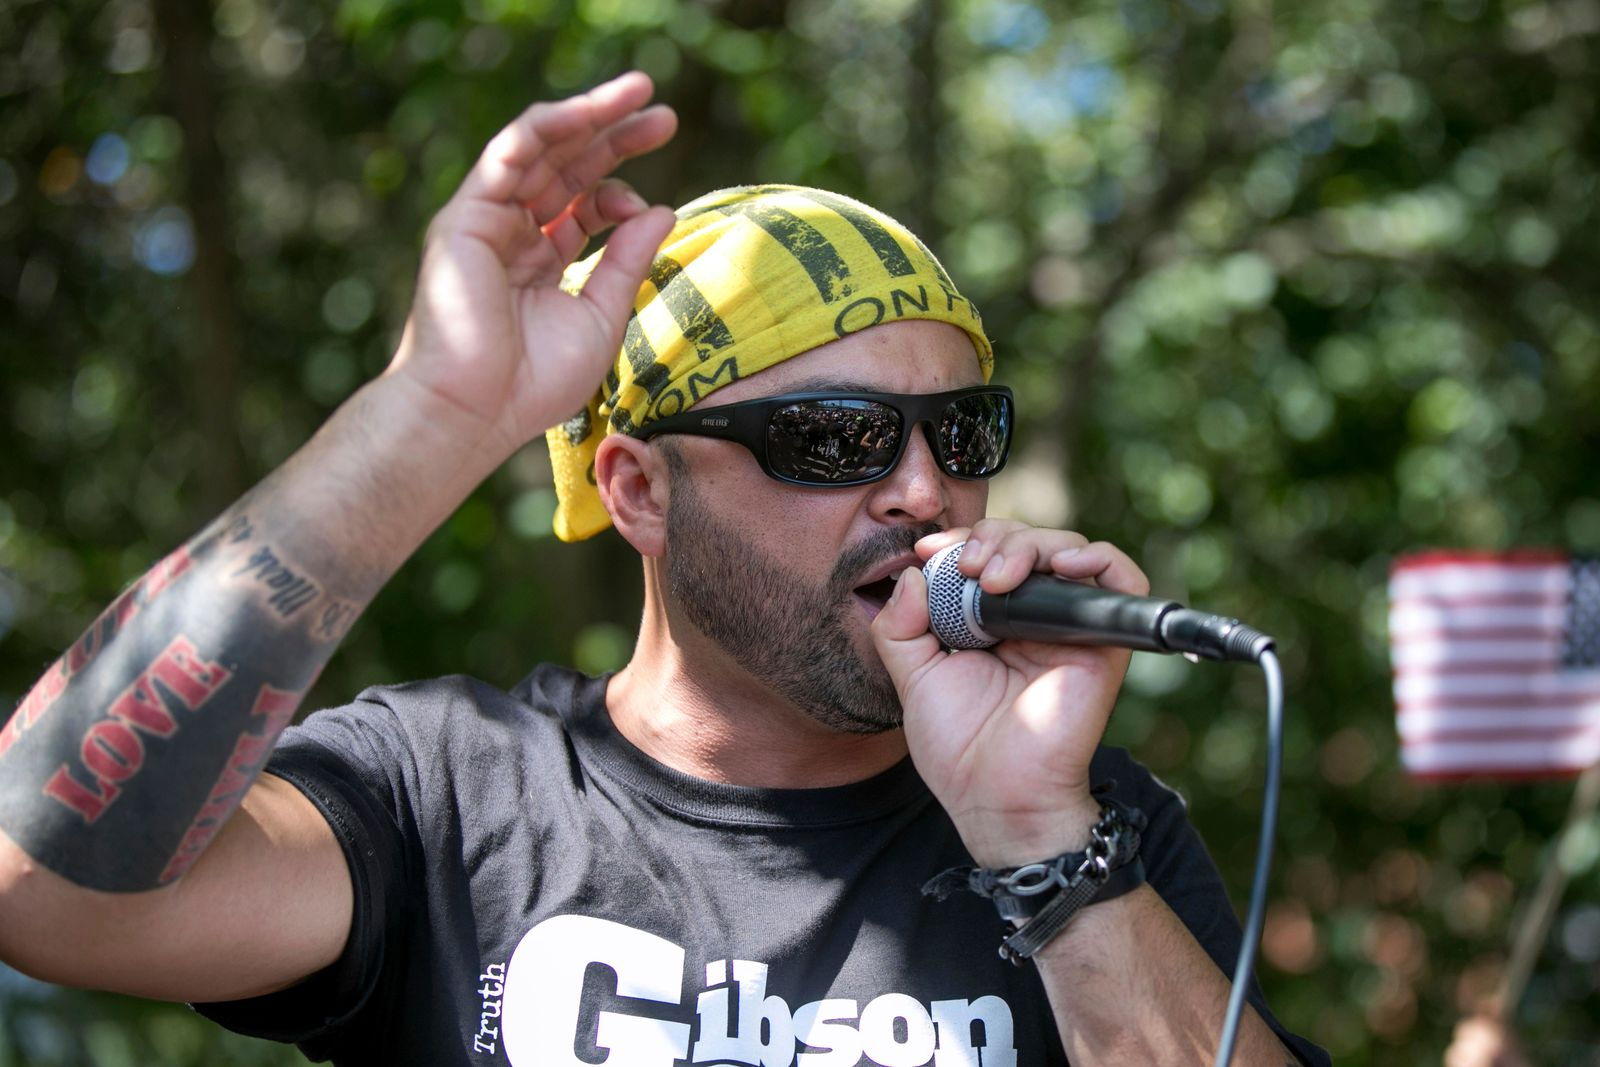 "FILE - In this Aug. 4, 2018 file photo, Patriot Prayer founder and rally organizer Joey Gibson speaks to his followers at a rally in Portland, Ore. On Friday, Aug. 16, 2019 authorities announced they've arrested Gibson, the leader of the right-wing group, on the eve of a far-right rally that's expected to draw people from around the U.S. to Portland on Saturday, Aug. 17, prompting Gibson to urge his followers to ""show up one hundred-fold"" in response. (AP Photo/John Rudoff, File)"